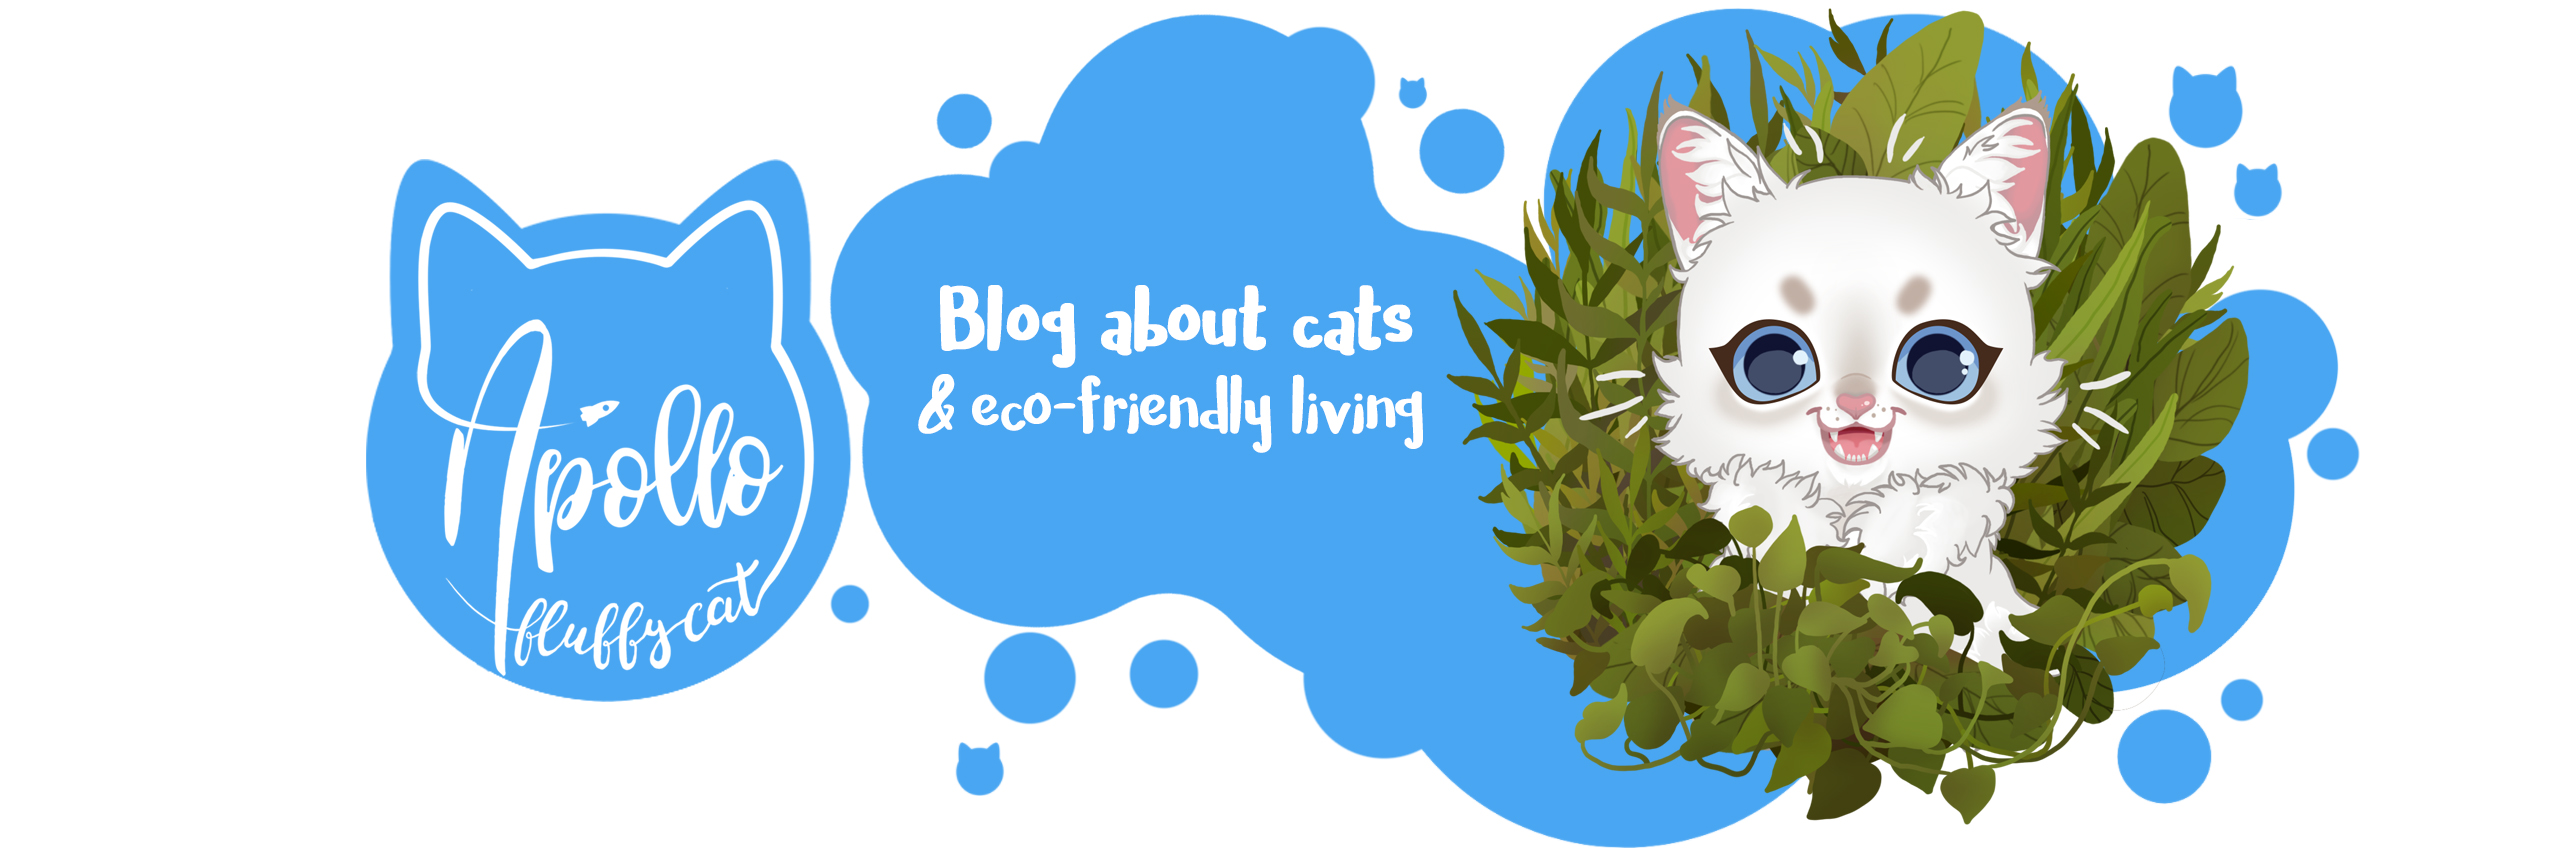 Apollo Fluffy Cat | Blog about cats and eco-friendly living